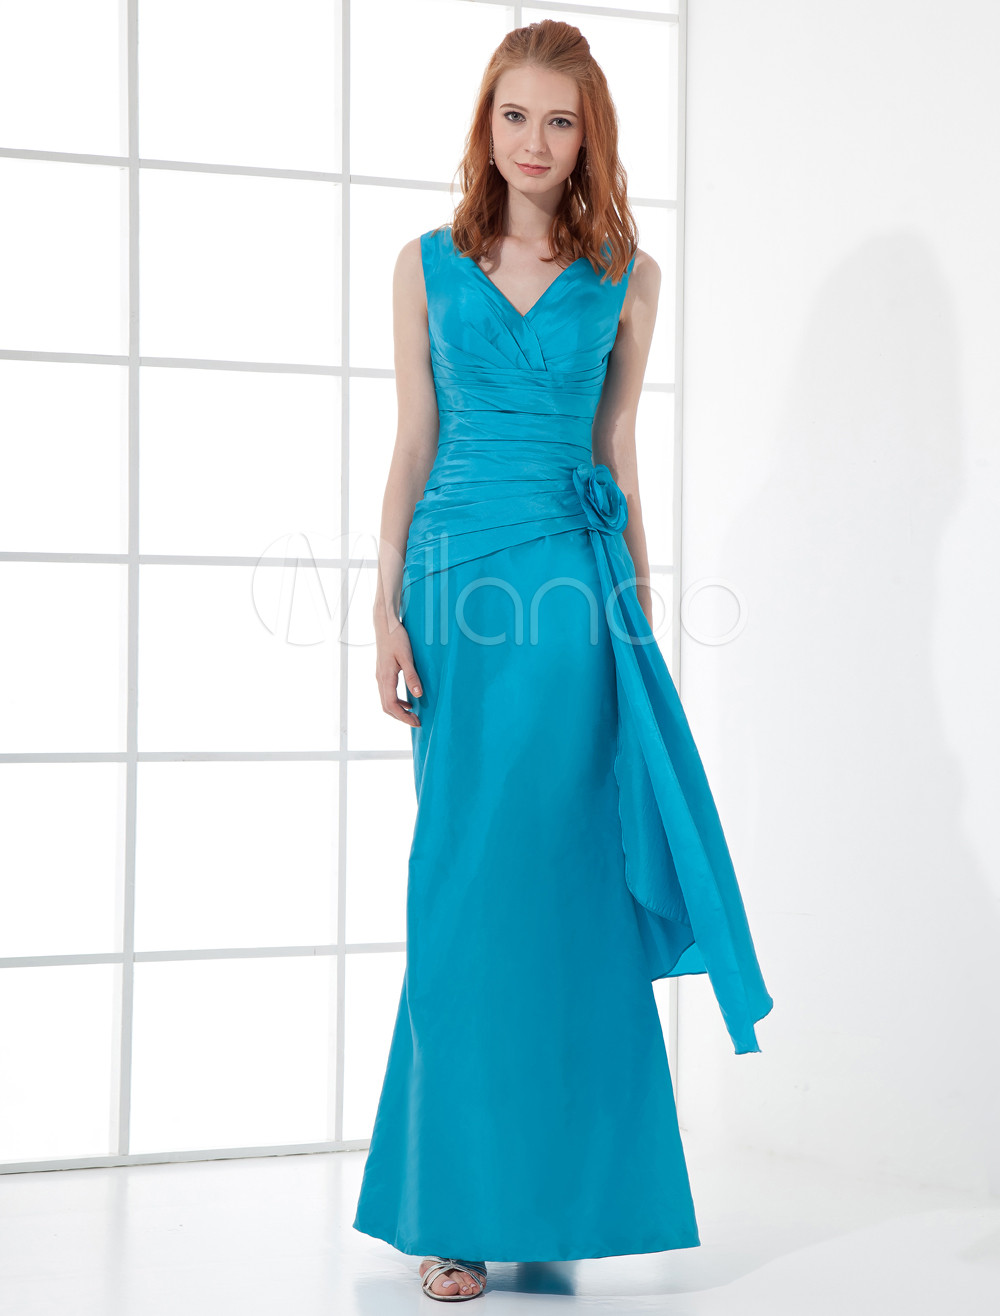 Long Bridesmaid Dress Teal V Neck Prom Dress Sleeveless Ruched Waist Flower Satin Floor Length Occasion Dress